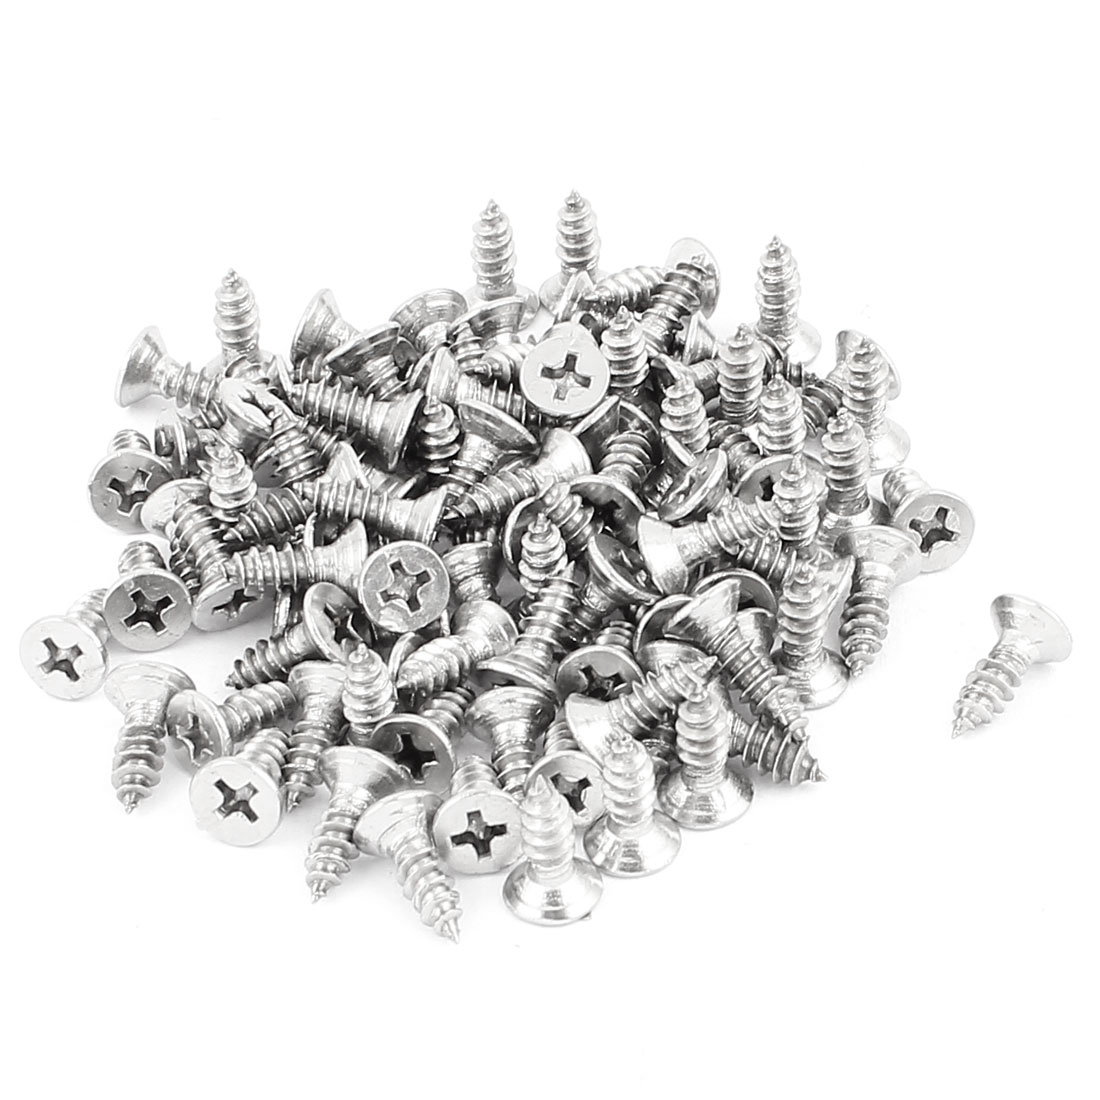 4.2mm x 13mm Flat Head Phillips Self Tapping Screw Fasteners Silver Tone 100 Pcs